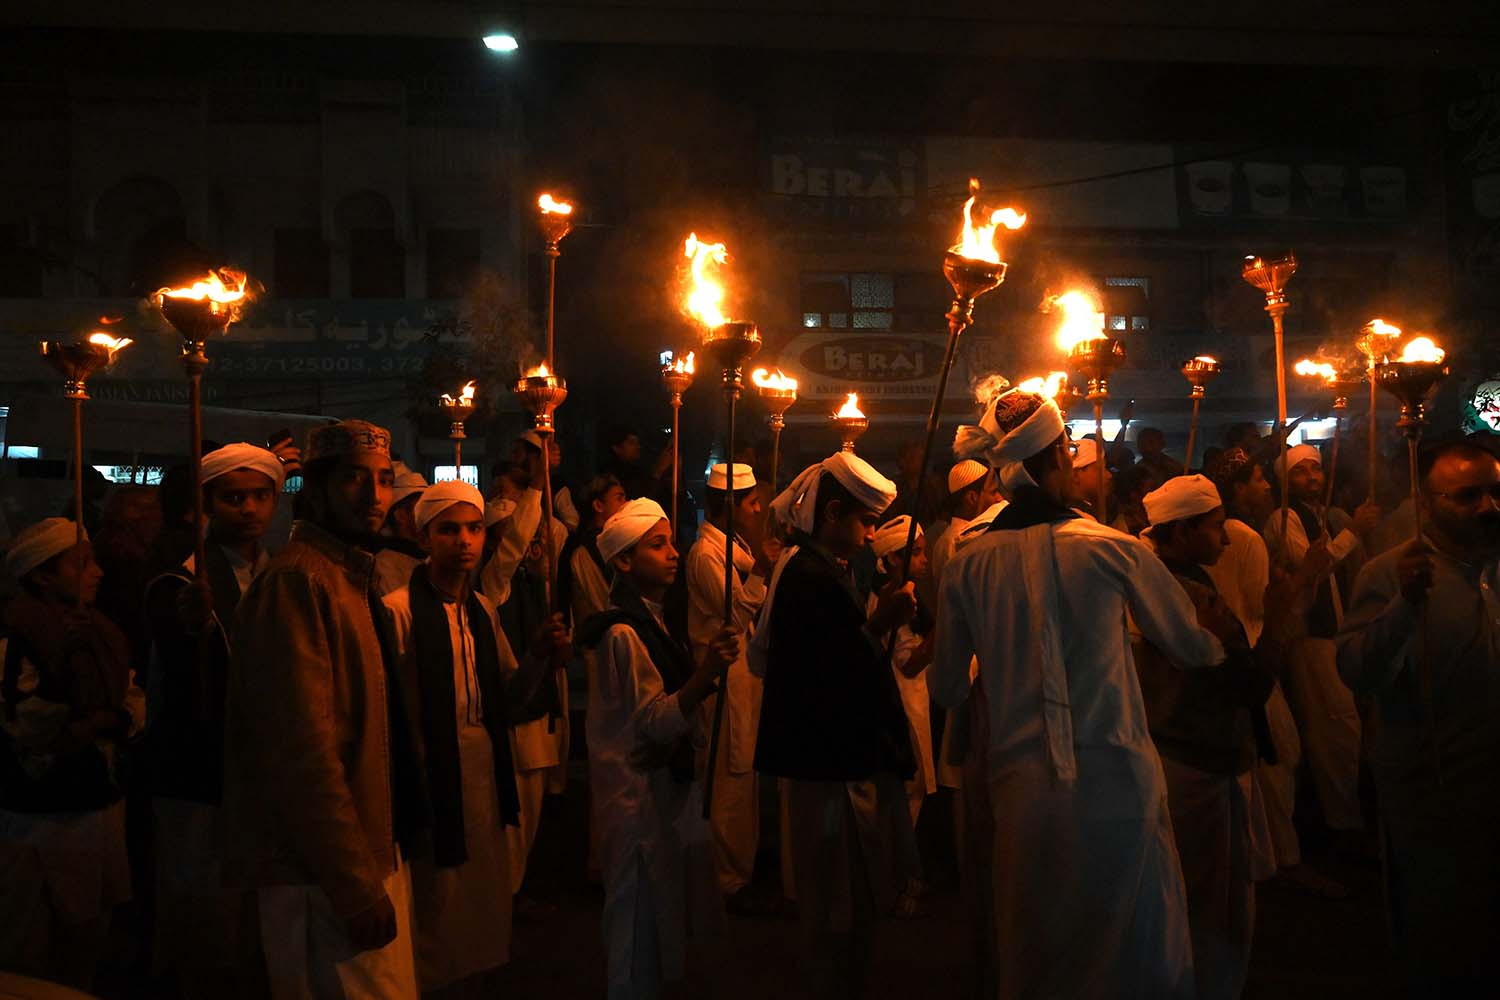 Pakistani children hold torches in a rally to mark the birthday of the Prophet Mohammed in Lahore on Nov. 9. ARIF ALI/AFP via Getty Images